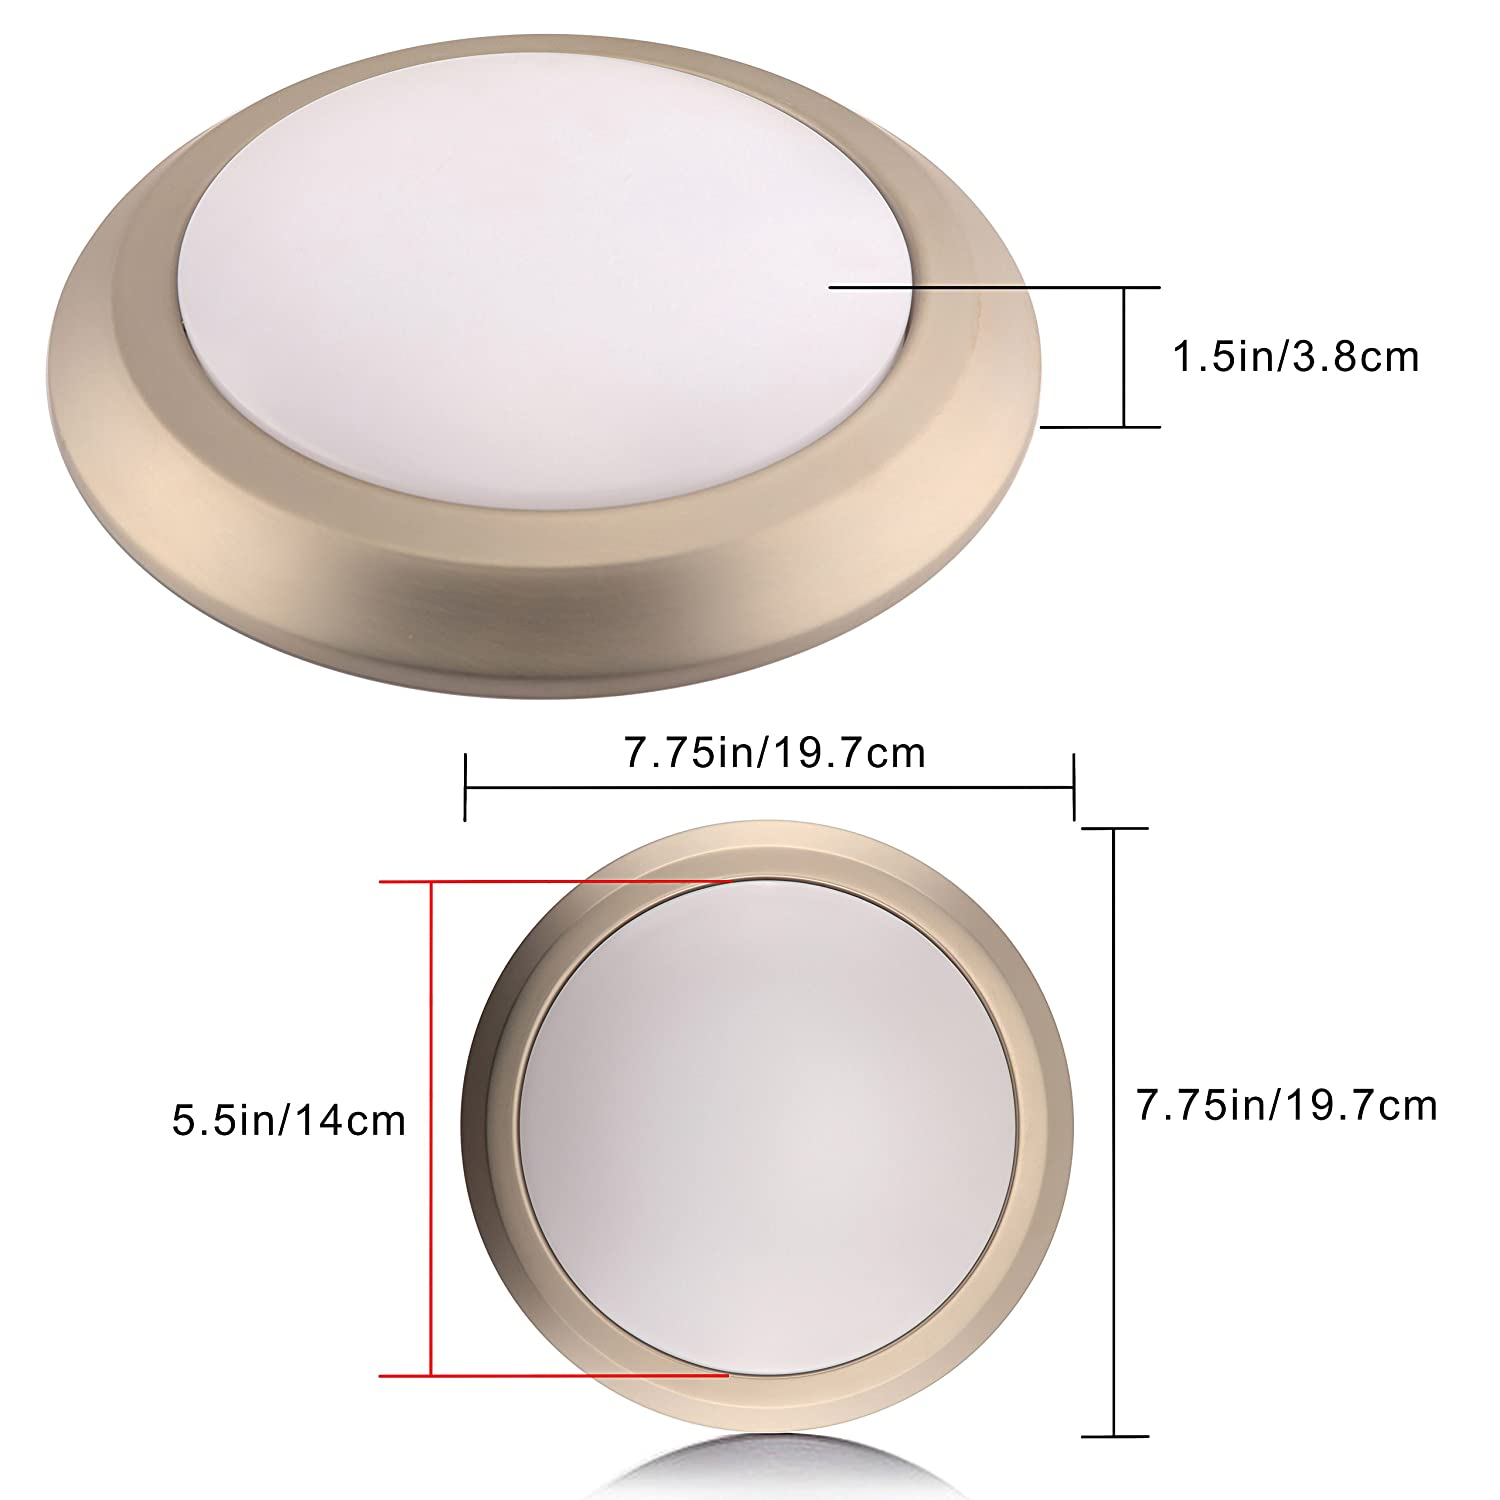 Amazon.com: LED Light Fixtures Ceiling Flush Mount Ceiling Light Fixture Dimmable for Bedroom,Hallway,7.5 Inch 17W (170W Equivalent) Brushed Nickel Finish ...